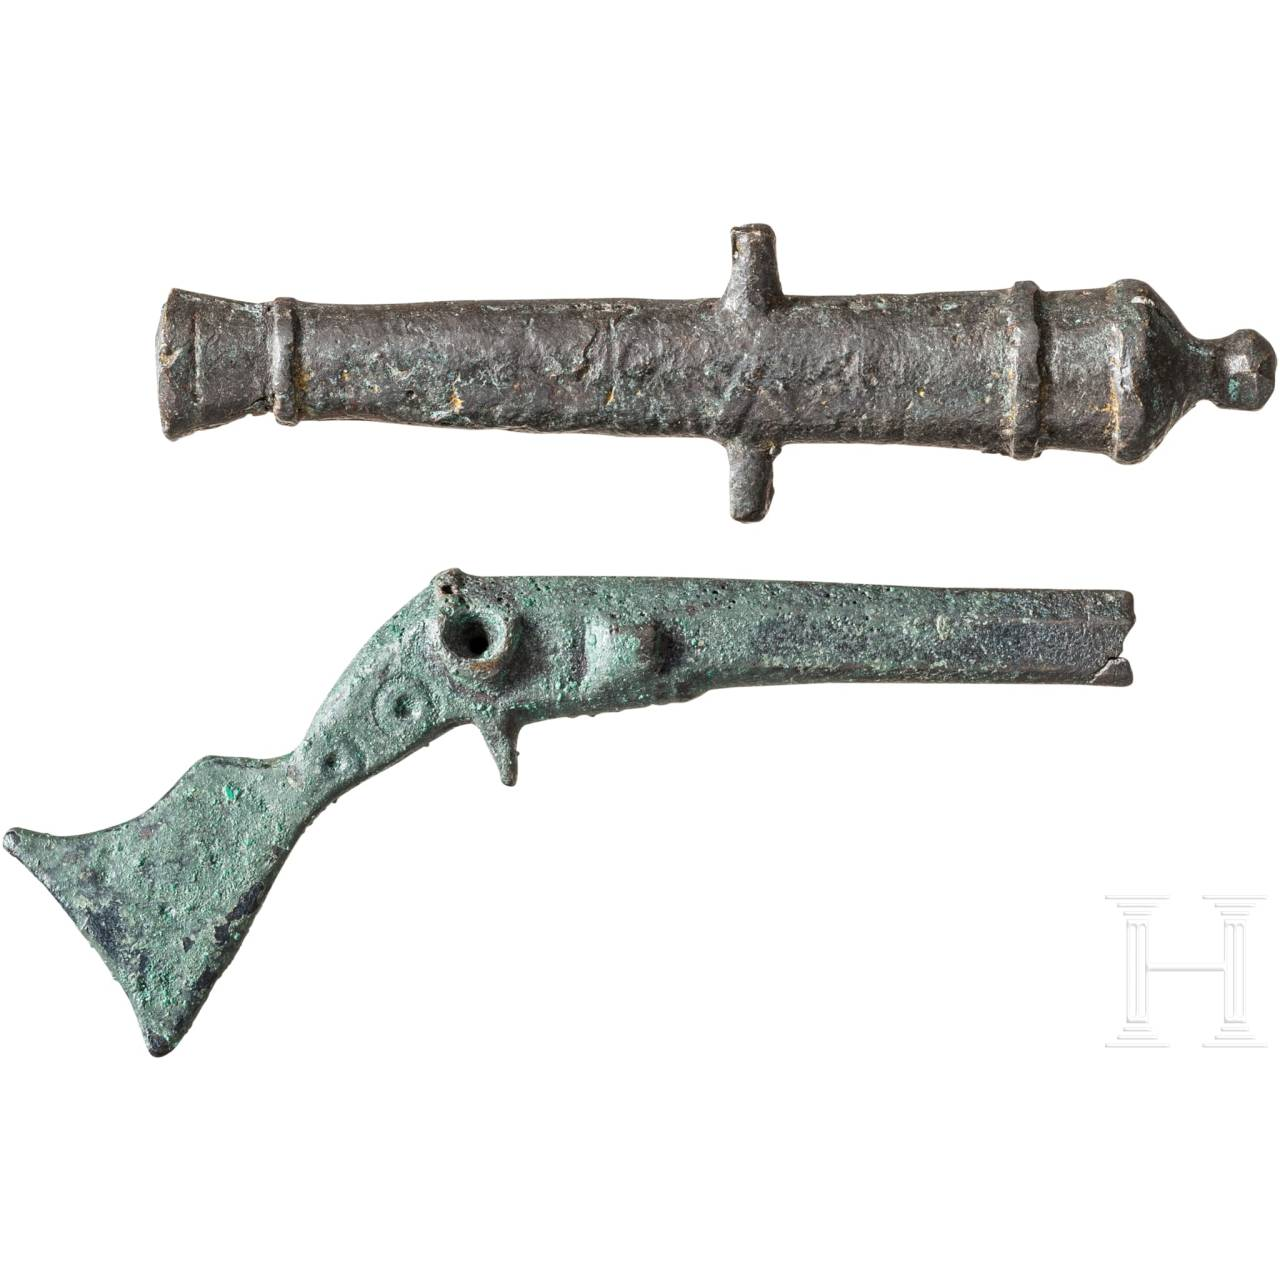 A toy carbine and a cannon barrel, 17th century